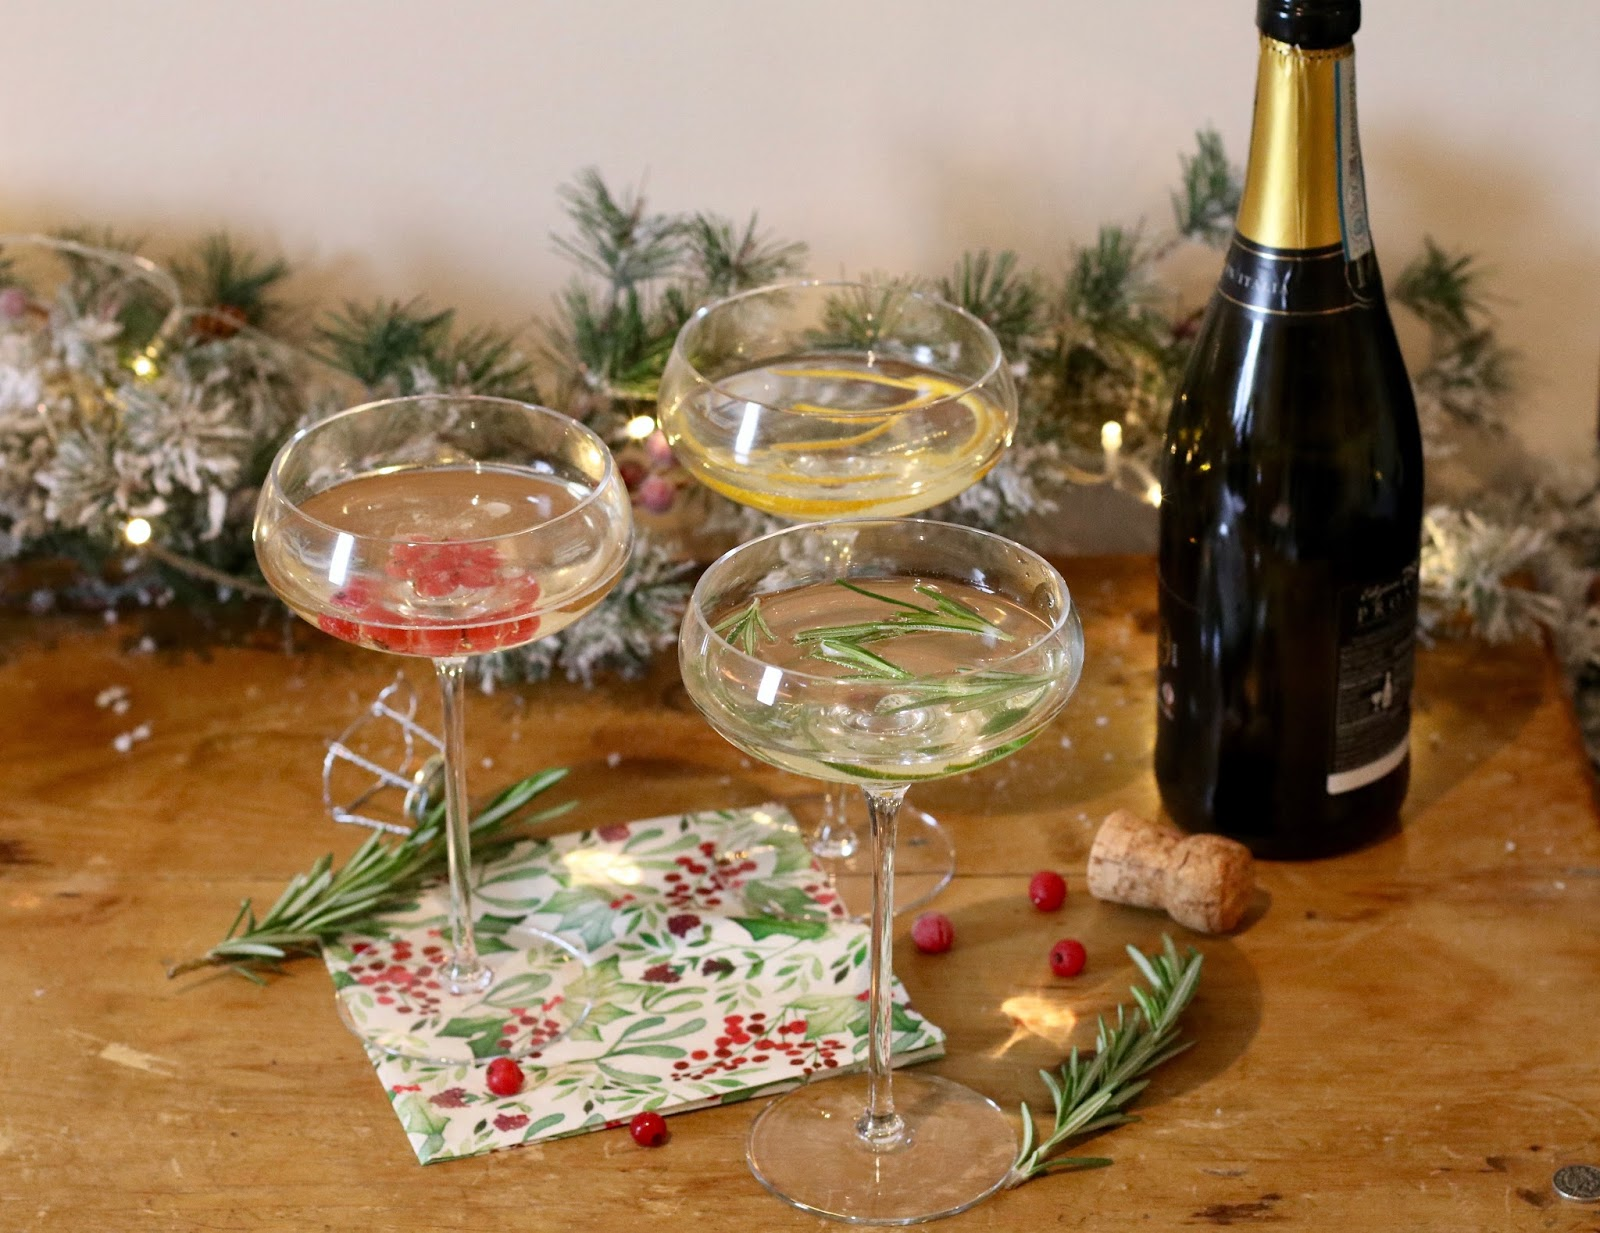 Festive-prosecco-Christmas-red-currants-orange-peel-rosemary